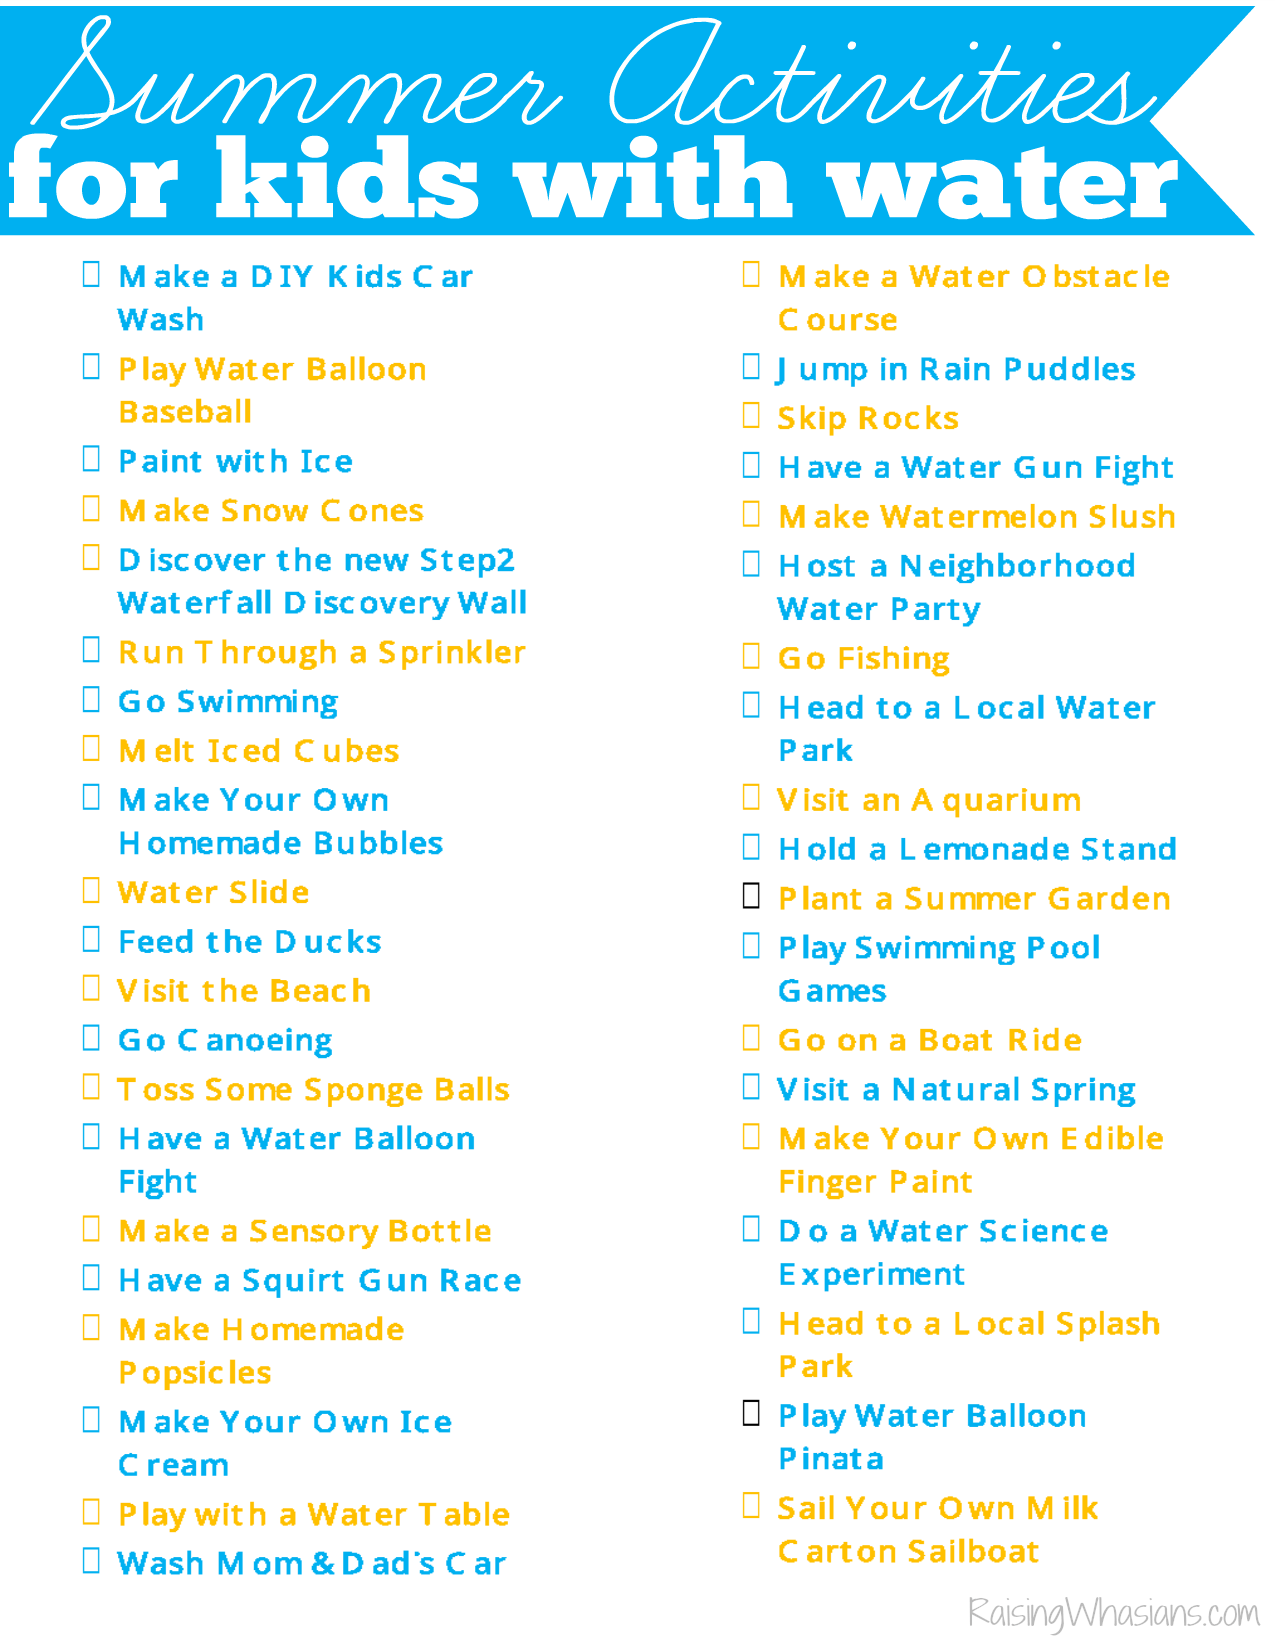 40 Water Summer Activities For Kids Printable Checklist